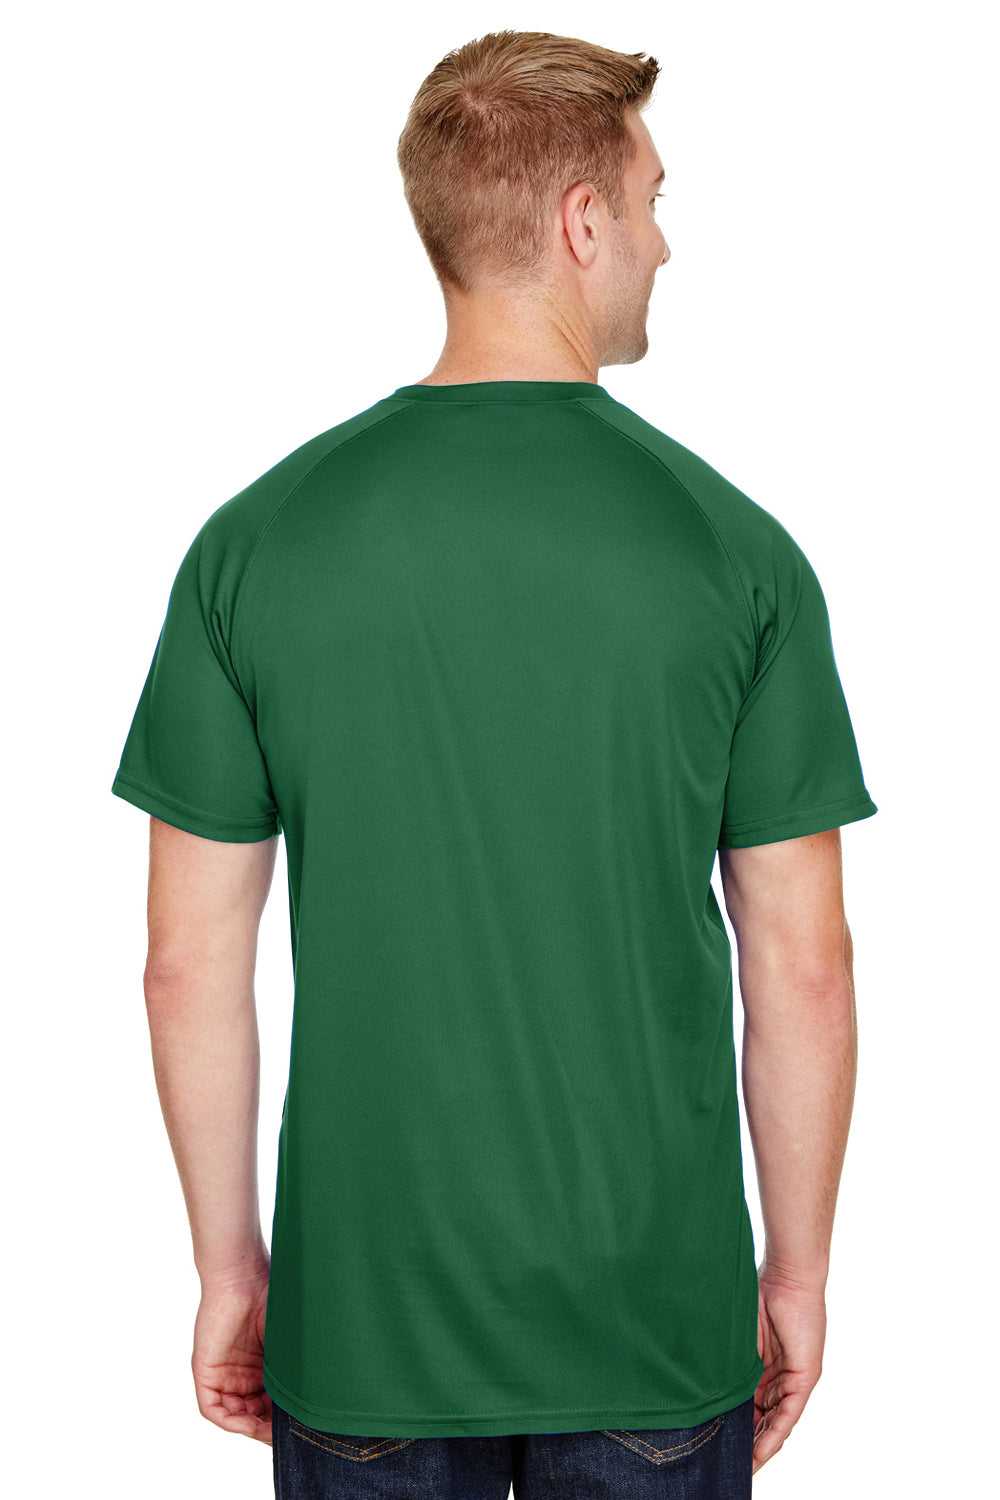 Augusta Sportswear AG1565 Mens Attain 2 Button Short Sleeve Baseball Jersey Dark Green Back